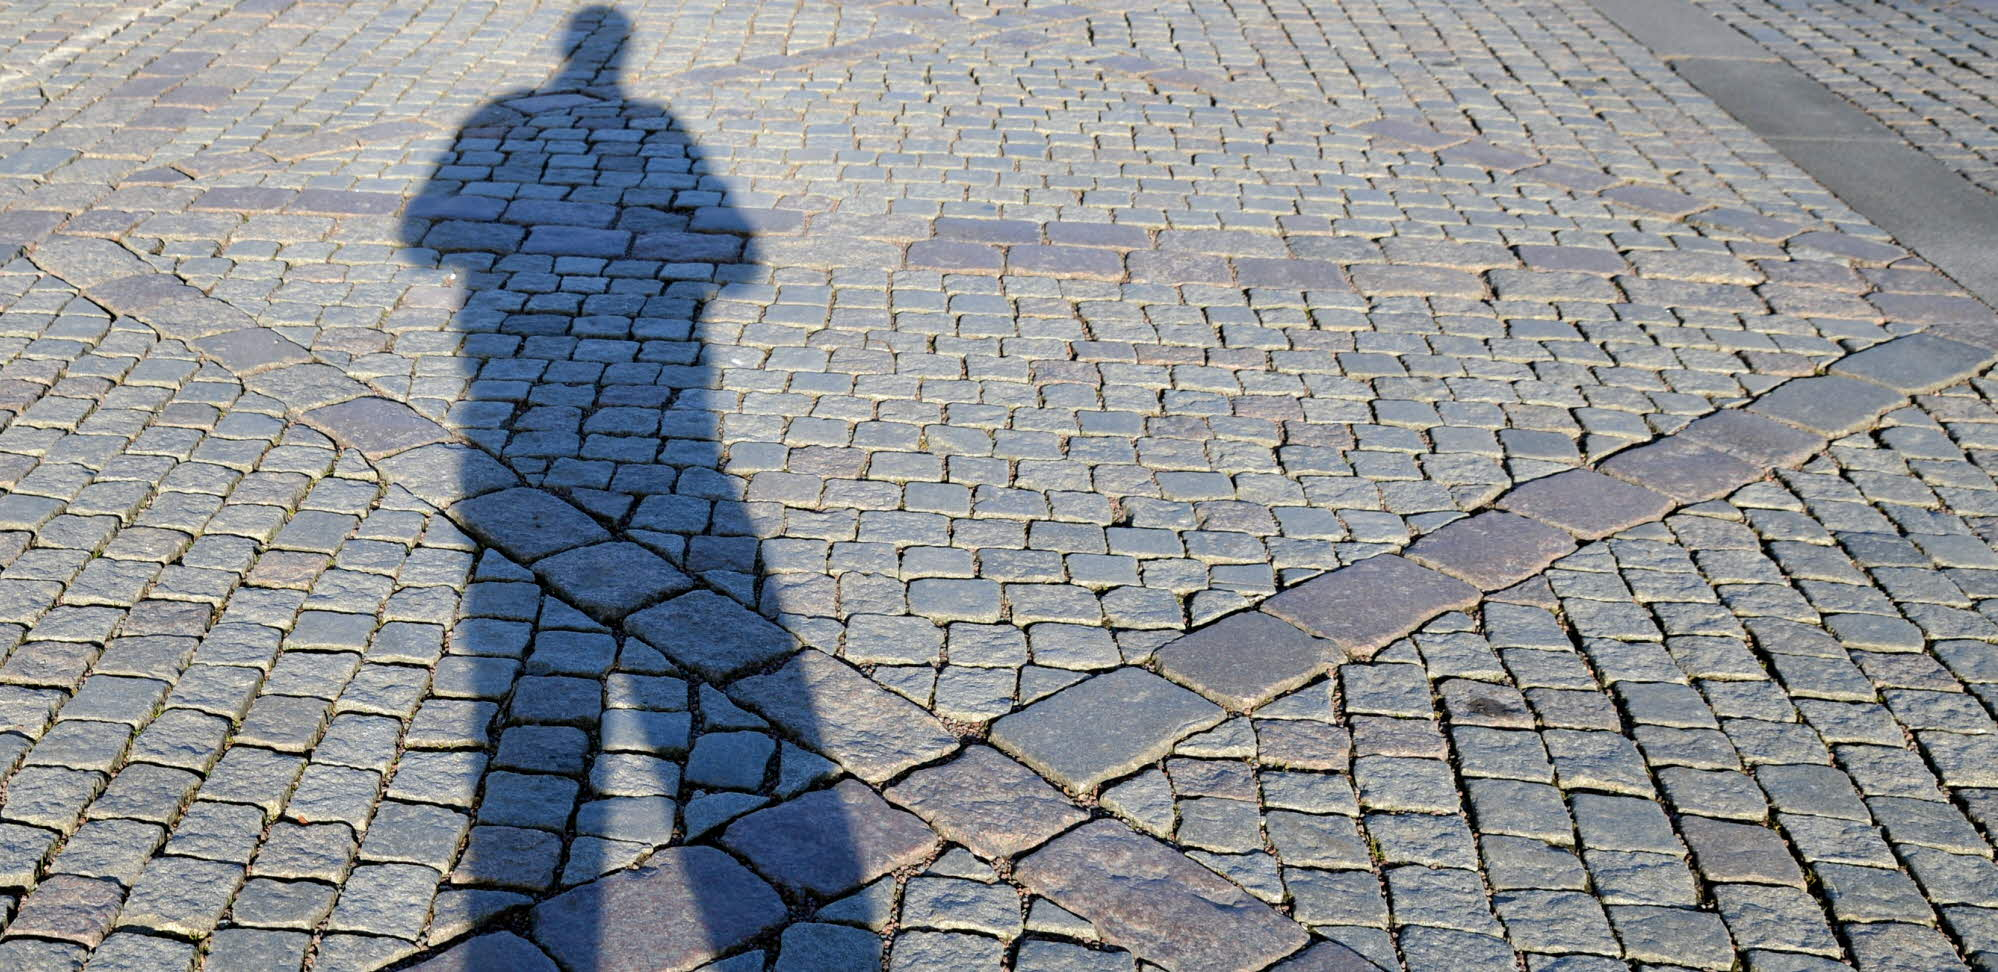 shadow of a person on the ground